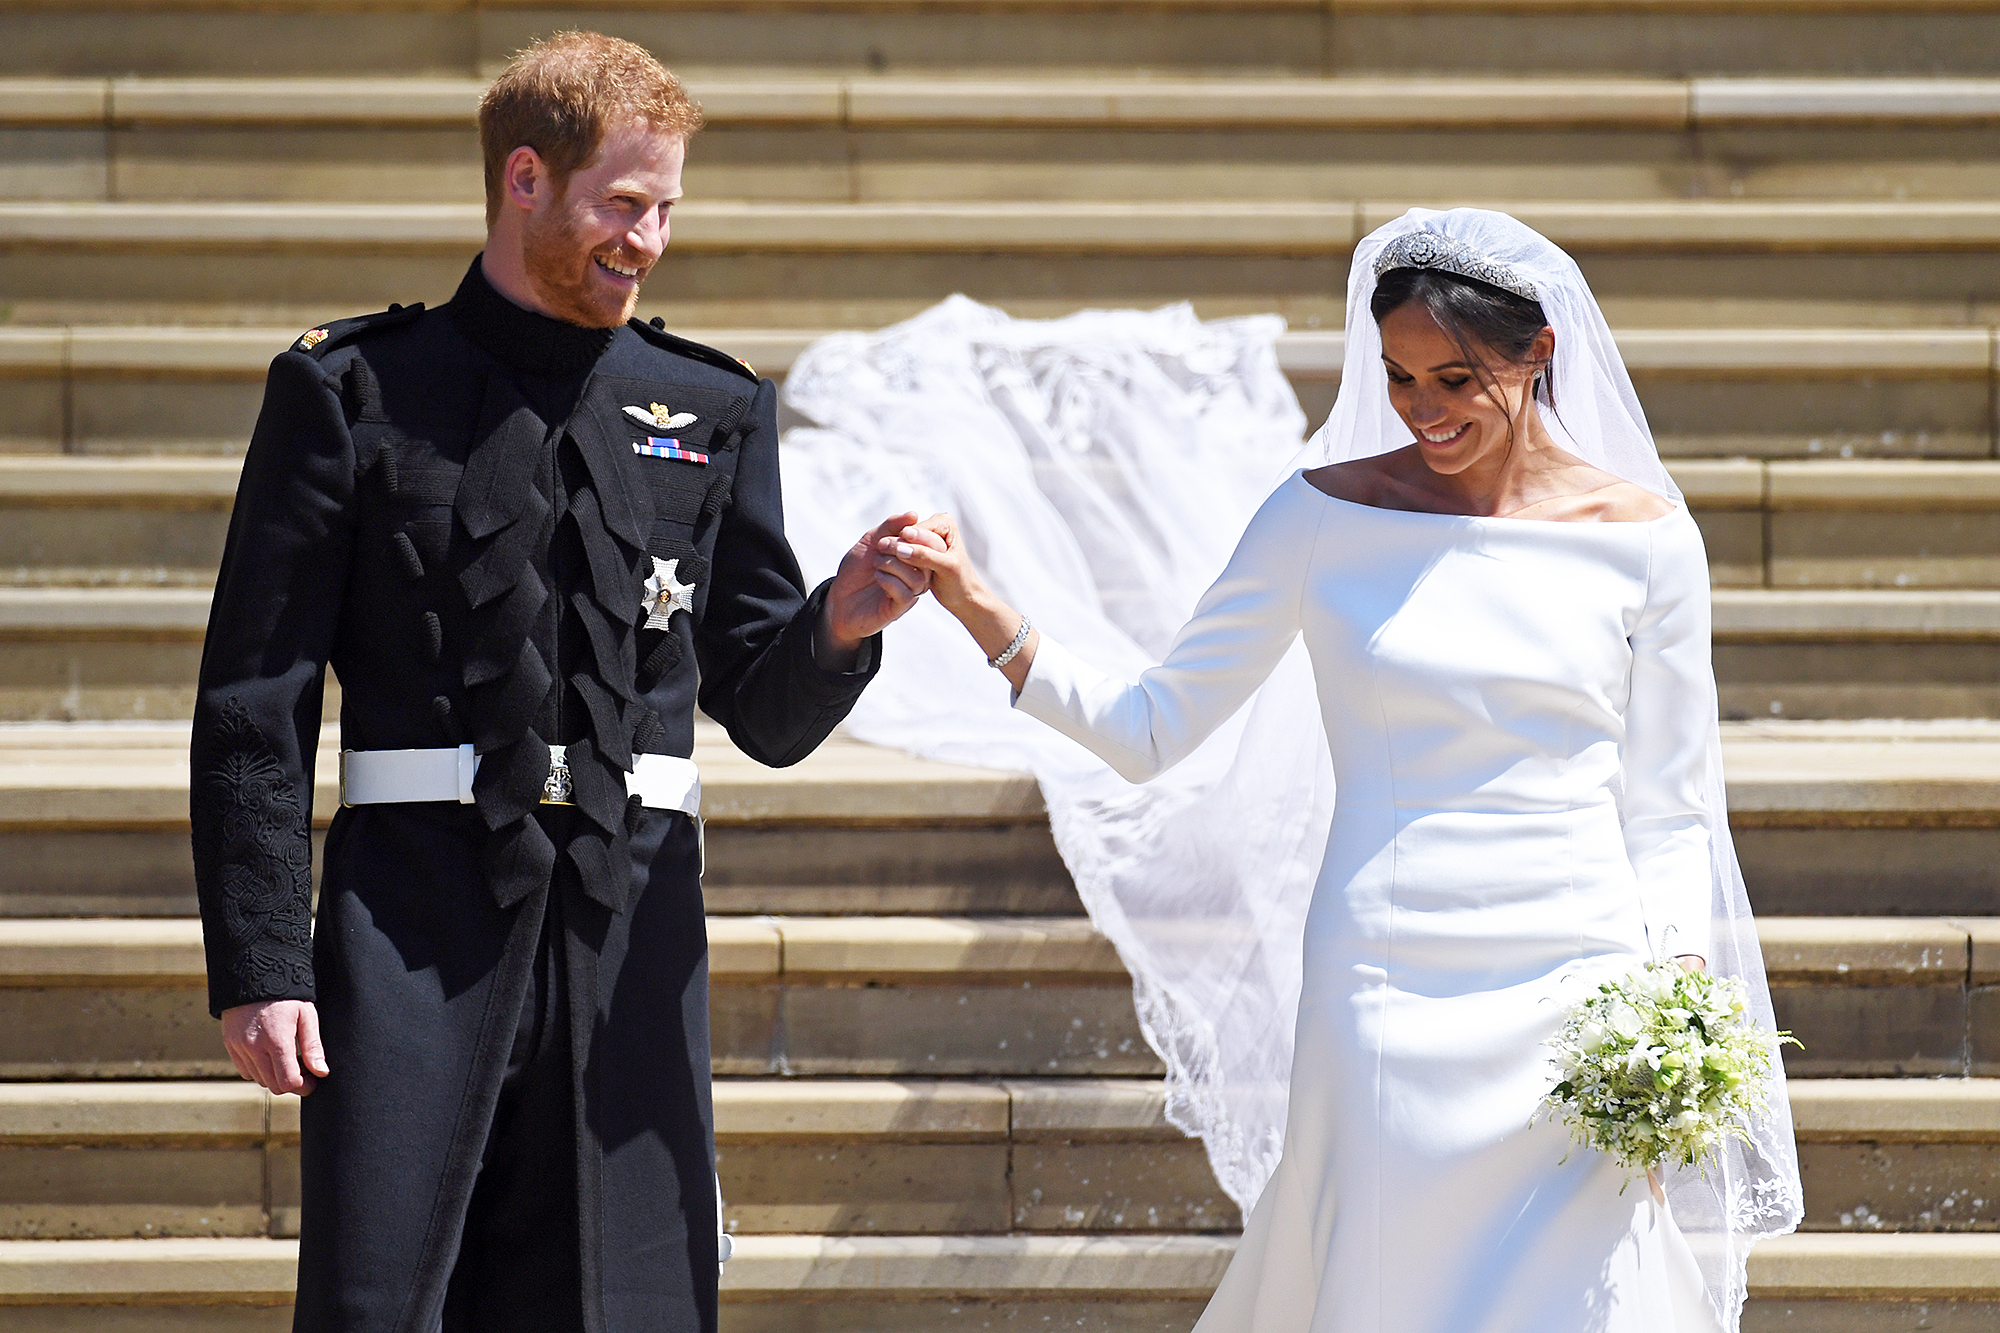 Meghan Markle, Prince Harry send thank you notes after royal wedding